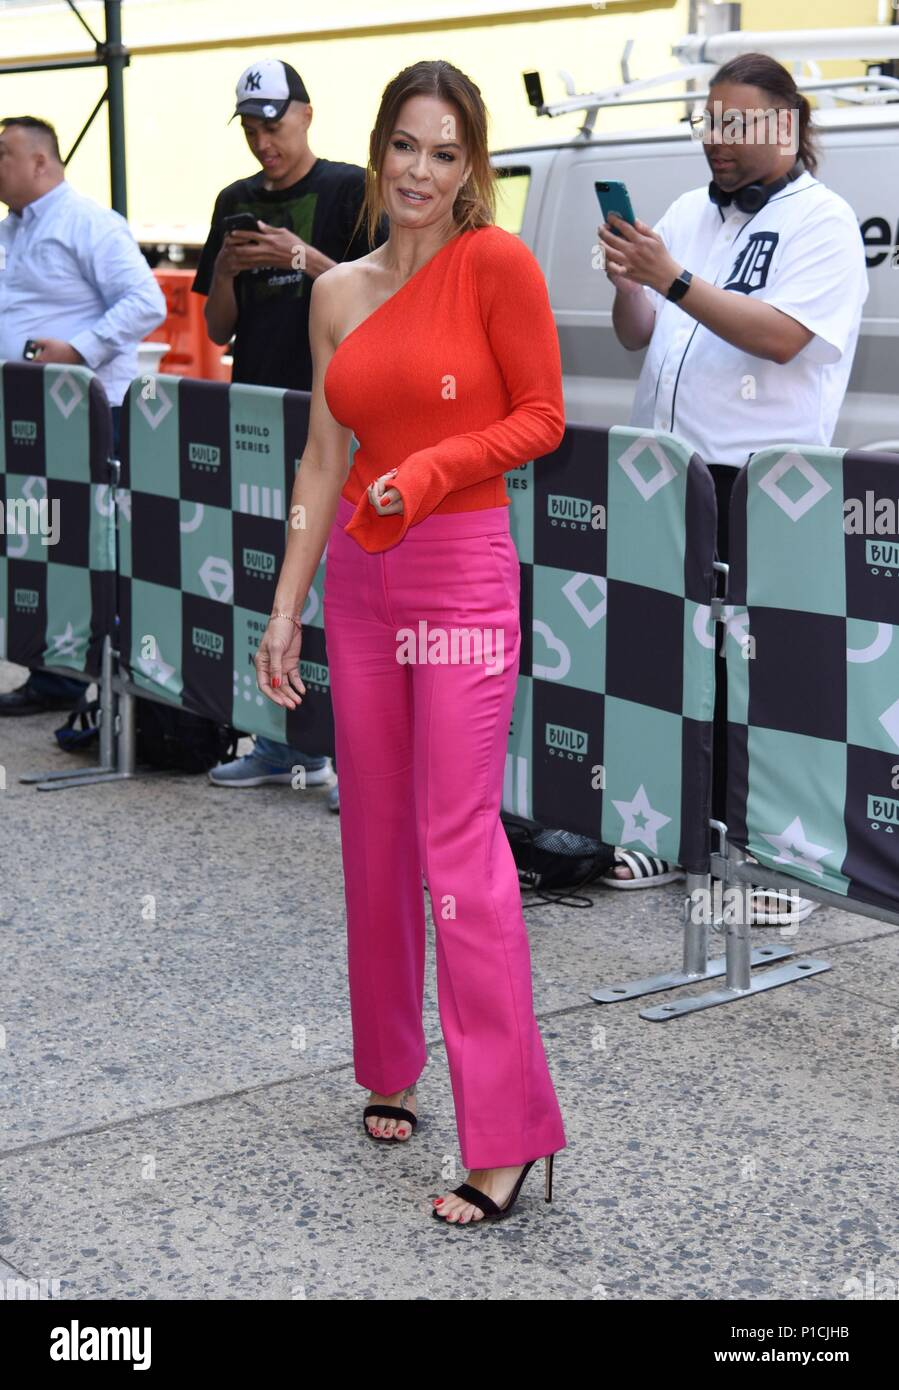 New York, NY, USA. 11th June, 2018. Brooke Burke, seen at BUILD Series to promote BOOTY BURN out and about for Celebrity Candids - MON, New York, NY June 11, 2018. Credit: Derek Storm/Everett Collection/Alamy Live News - Stock Image